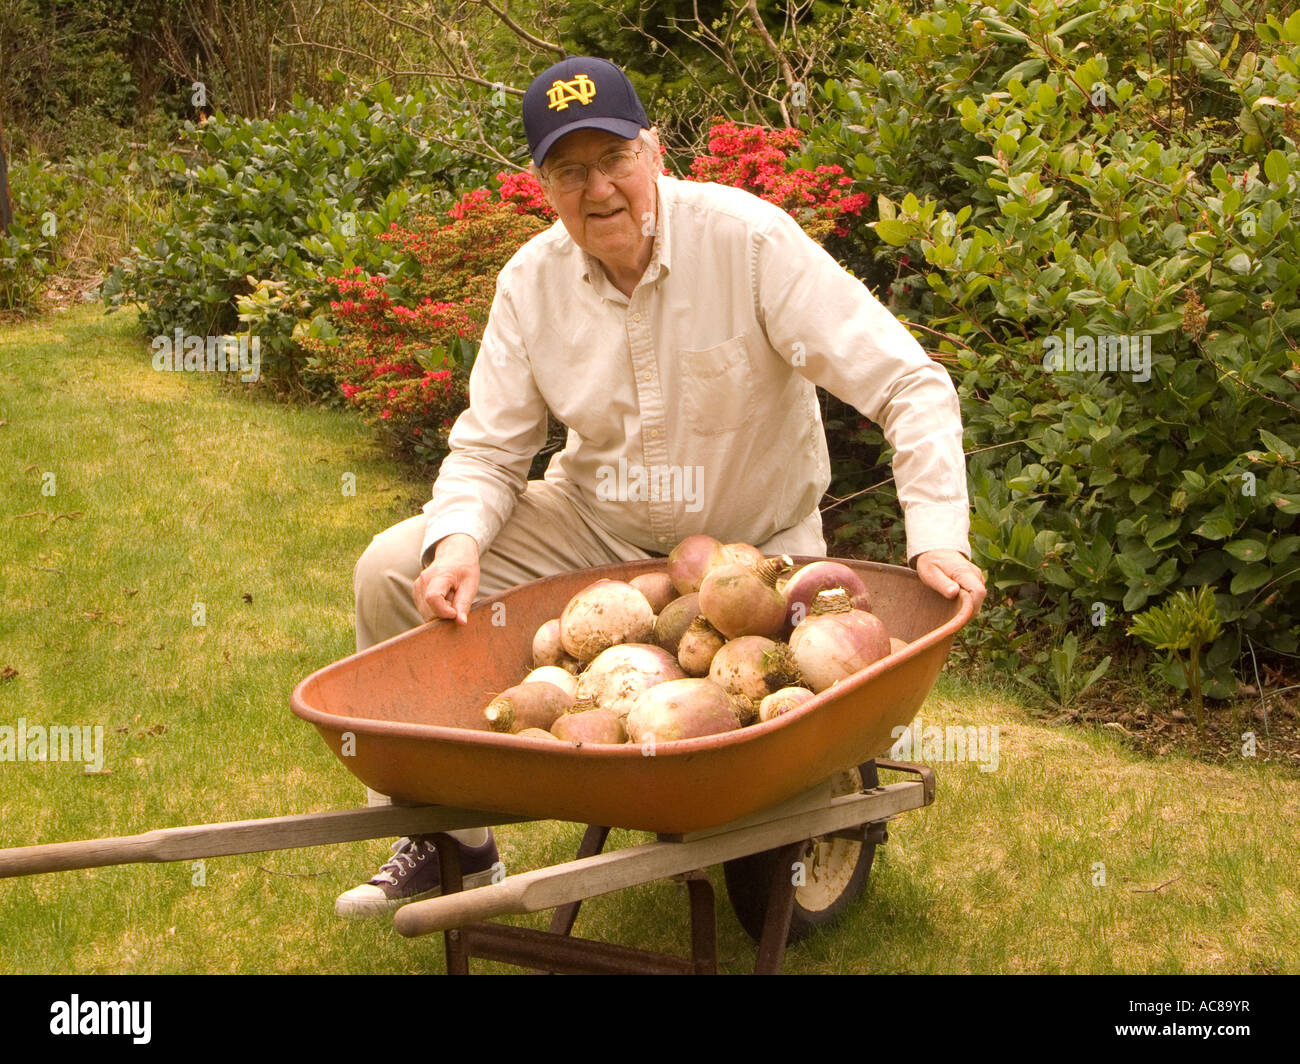 Proud gardener poses with the result of his labors a crop of large turnips ready for the table - Stock Image